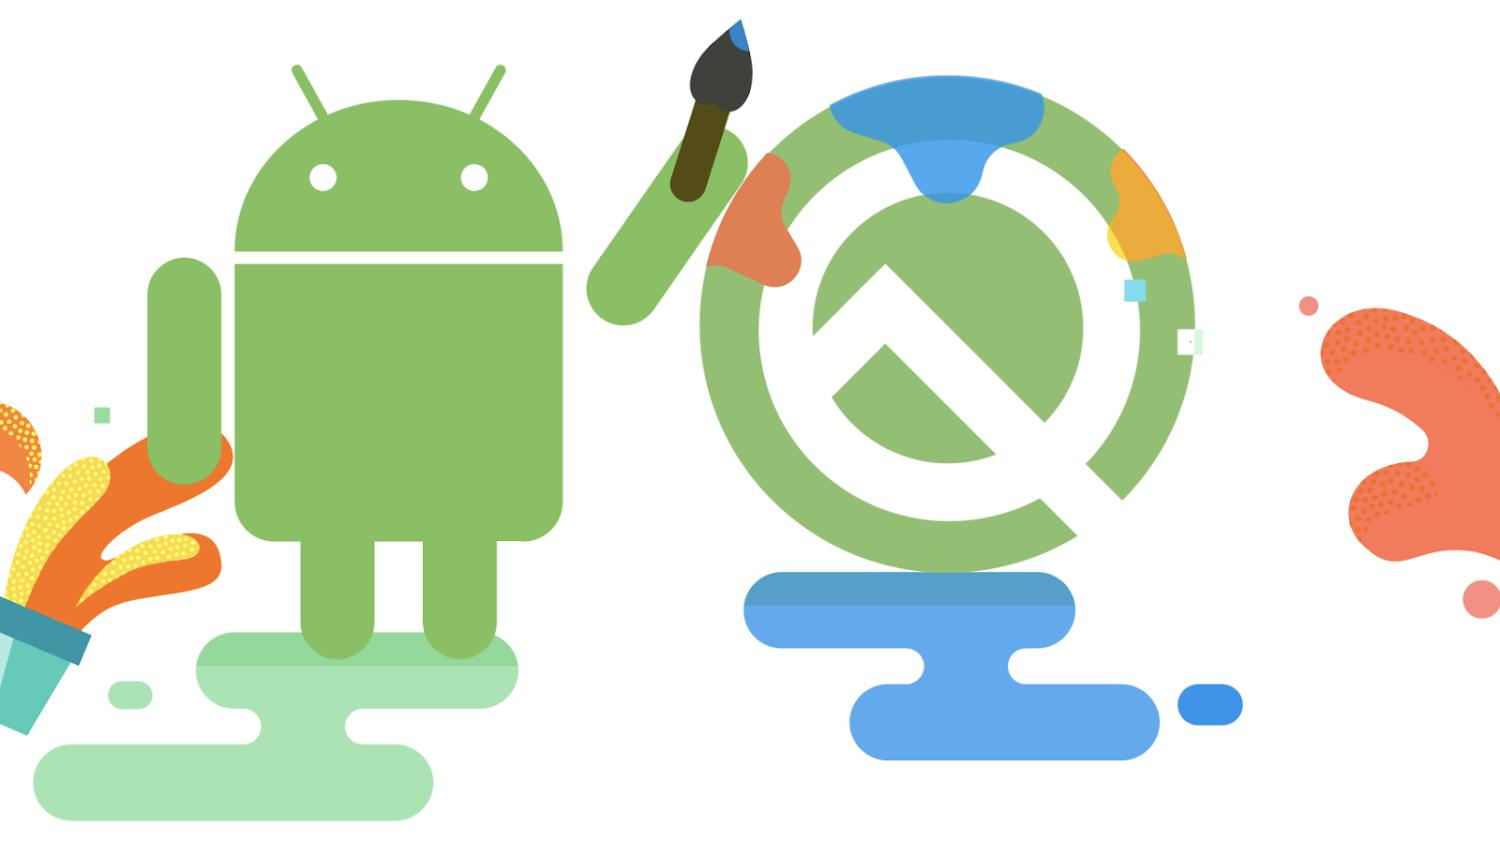 android q logo paint